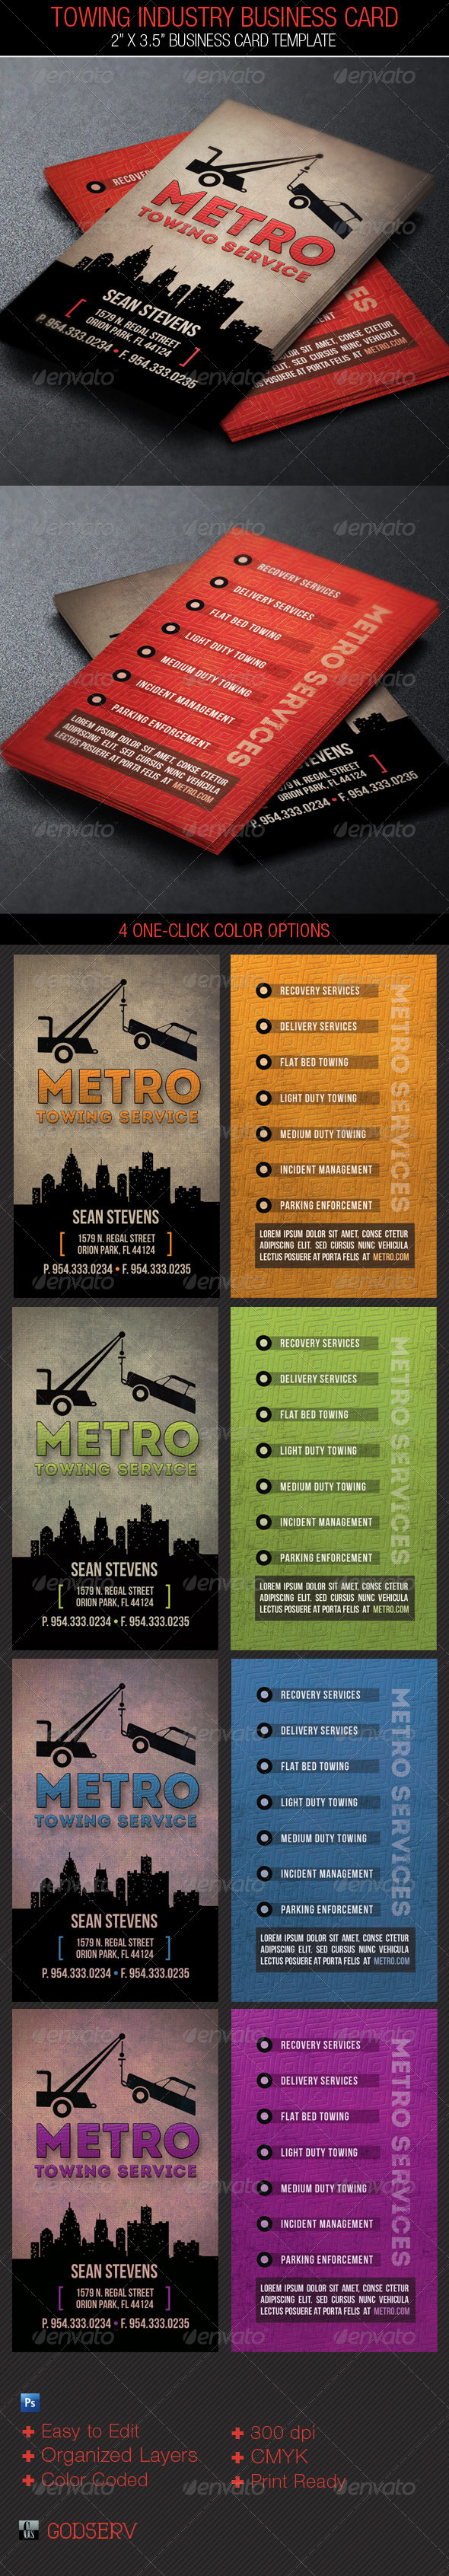 Towing Industry Business Card Template on Behance